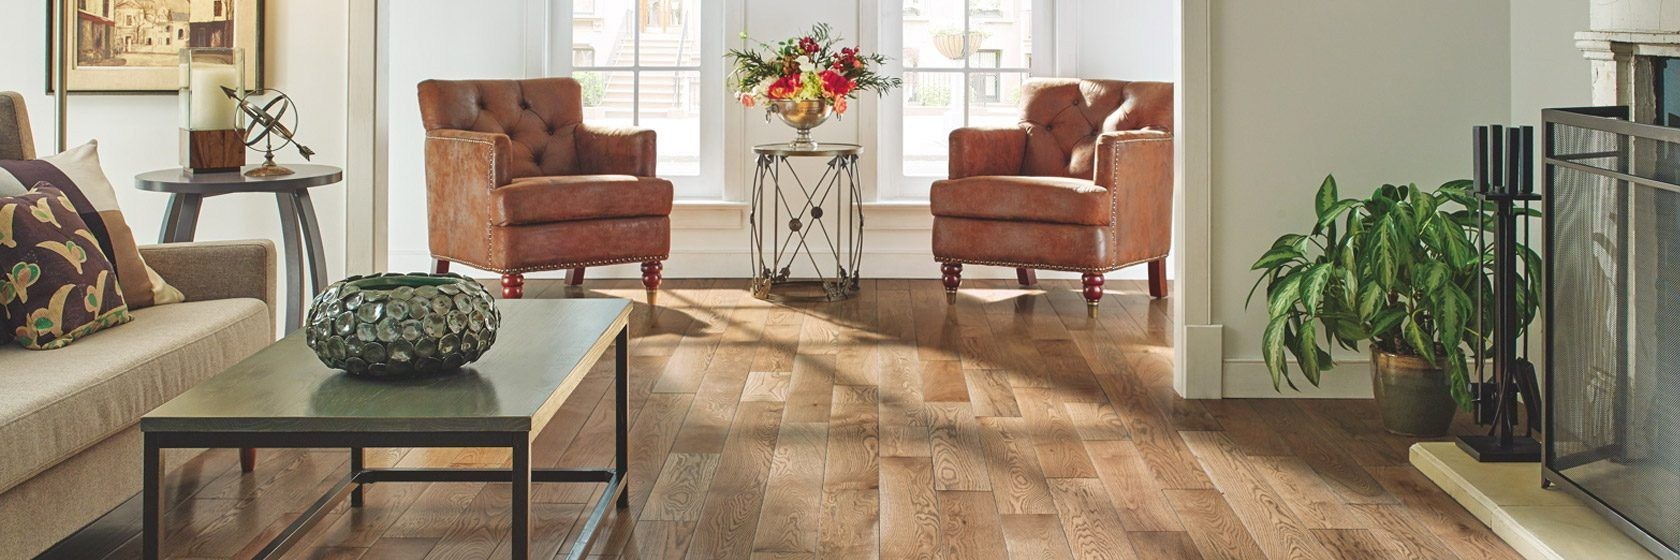 acacia hardwood flooring reviews of oak solid hardwood hay ground saktb39l4hgw is part of the regarding oak solid hardwood hay ground saktb39l4hgw is part of the timberbrushed collection from hardwood view specs order a sample